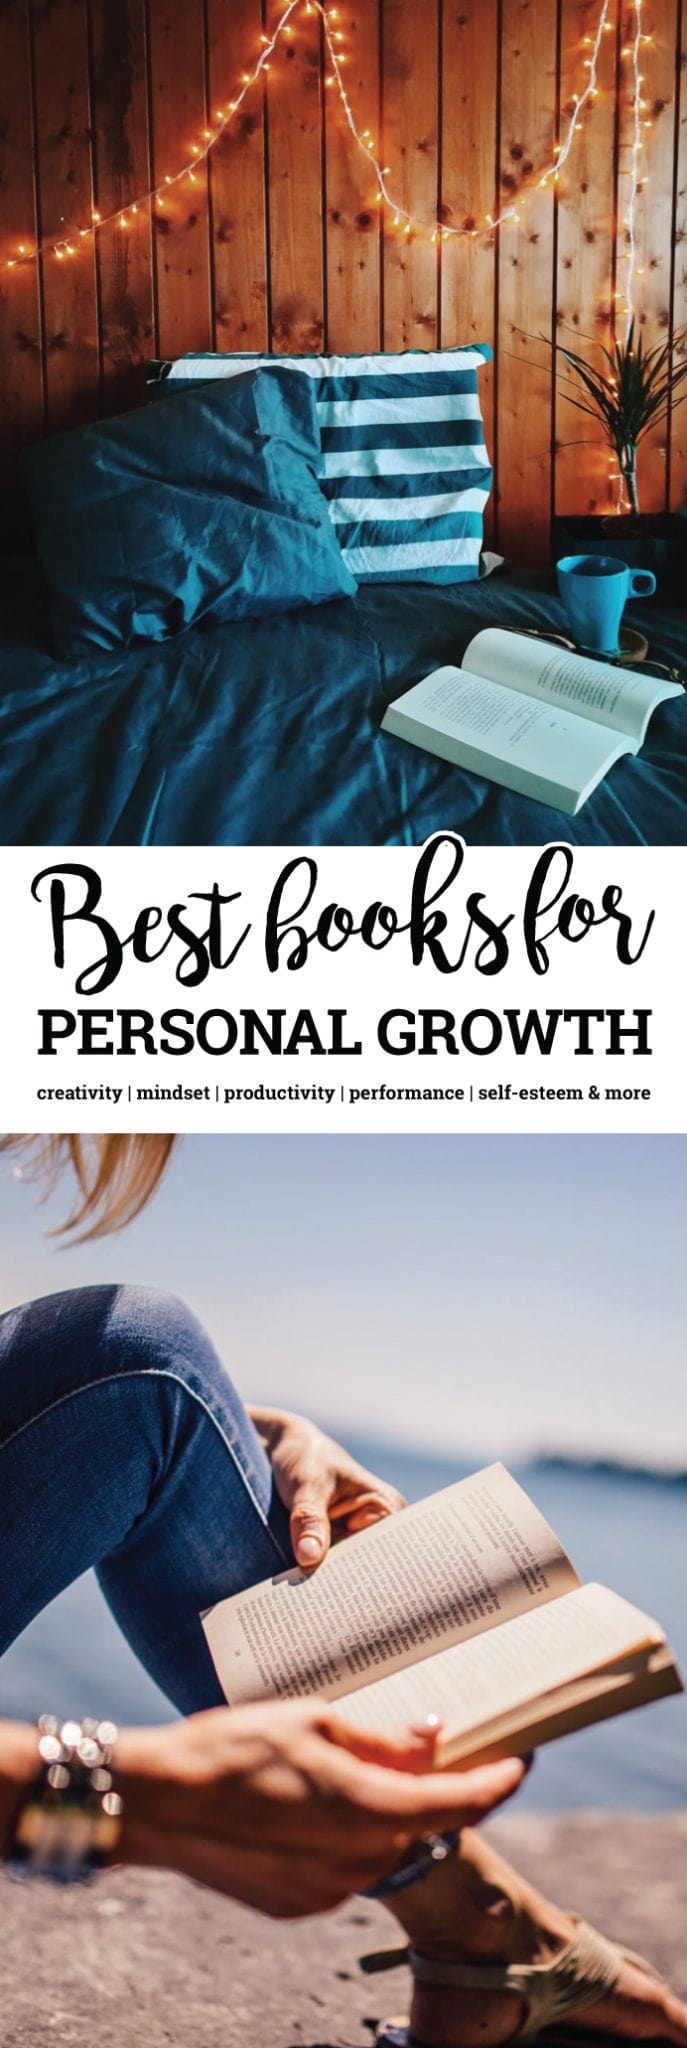 This list of the best self-development books includes books in personal growth categories such as business, entrepreneurial, spirituality, meditation, philosophy, productivity, self-love, wellness, finance, health and more. Plus tips on how to make reading a habit.